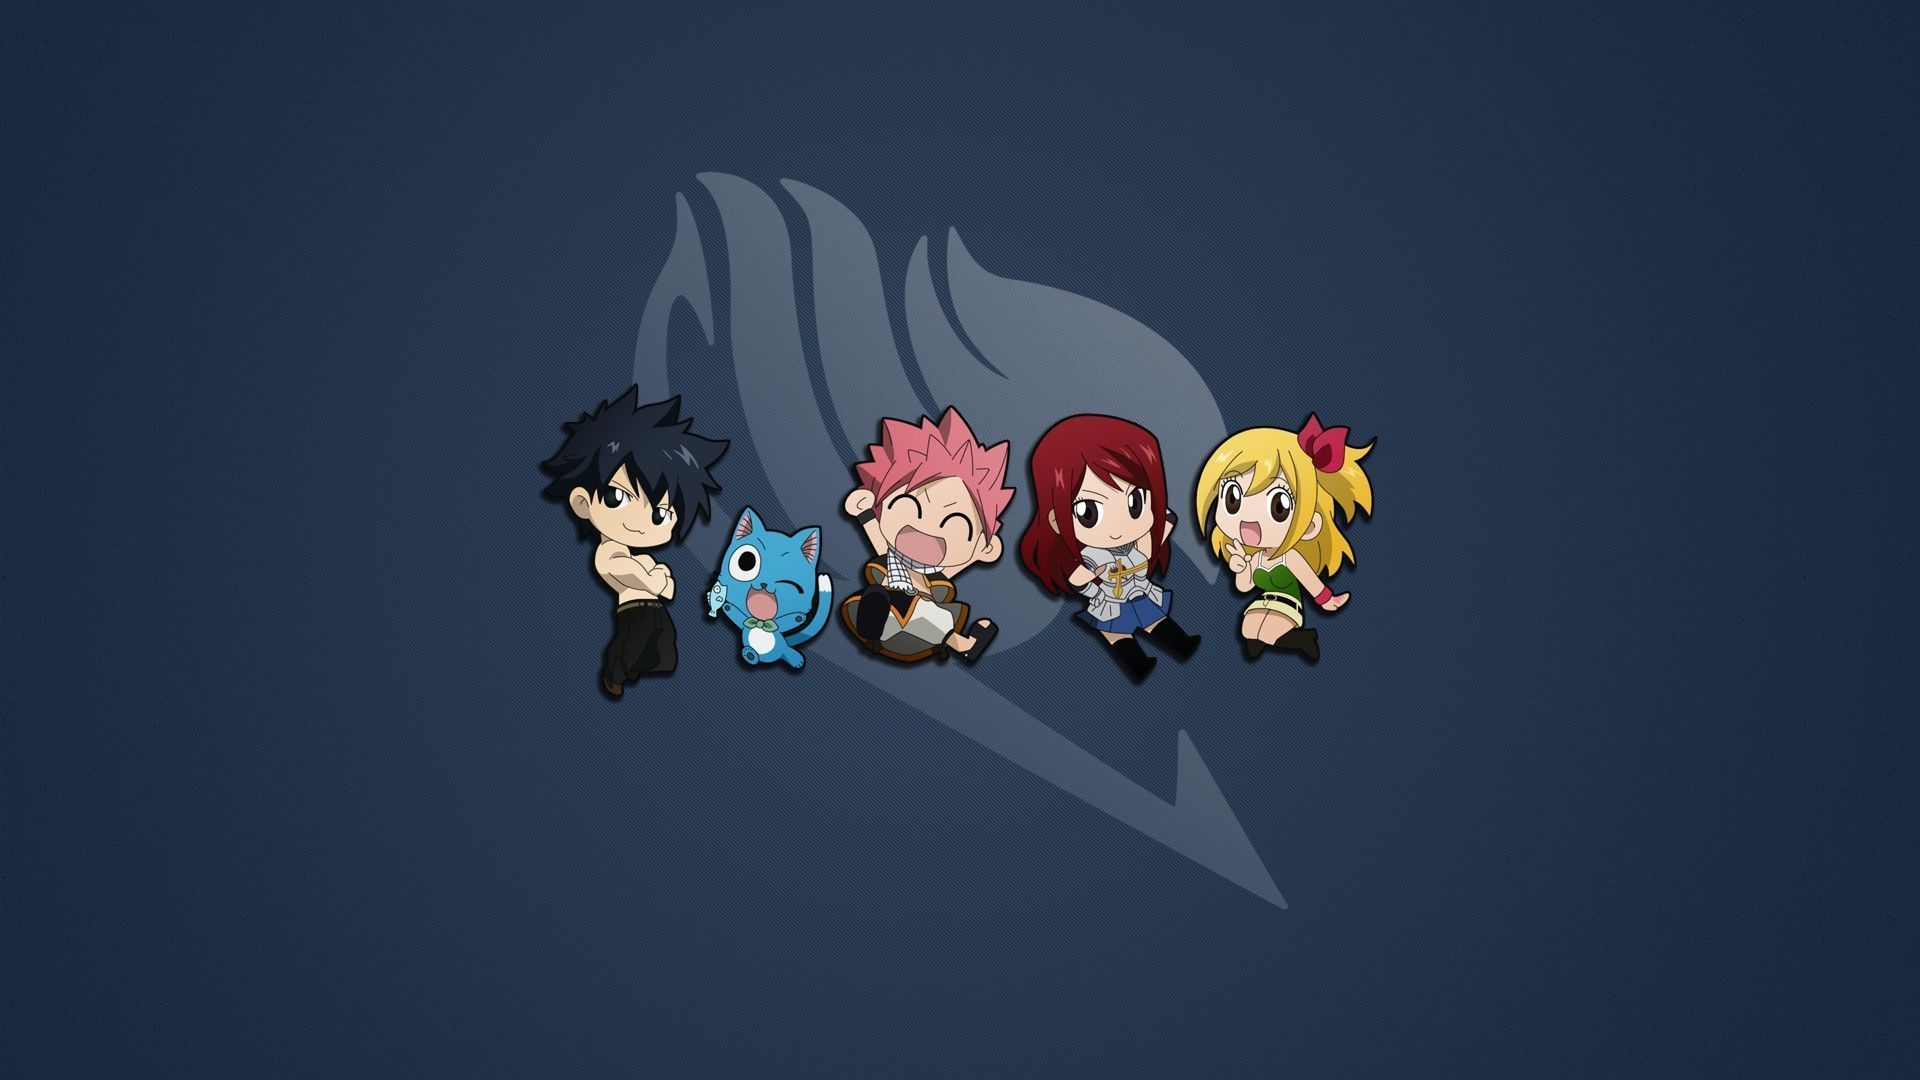 cute-fairy-tail-characters-14381 Fairy Tail wallpaper HD free ...